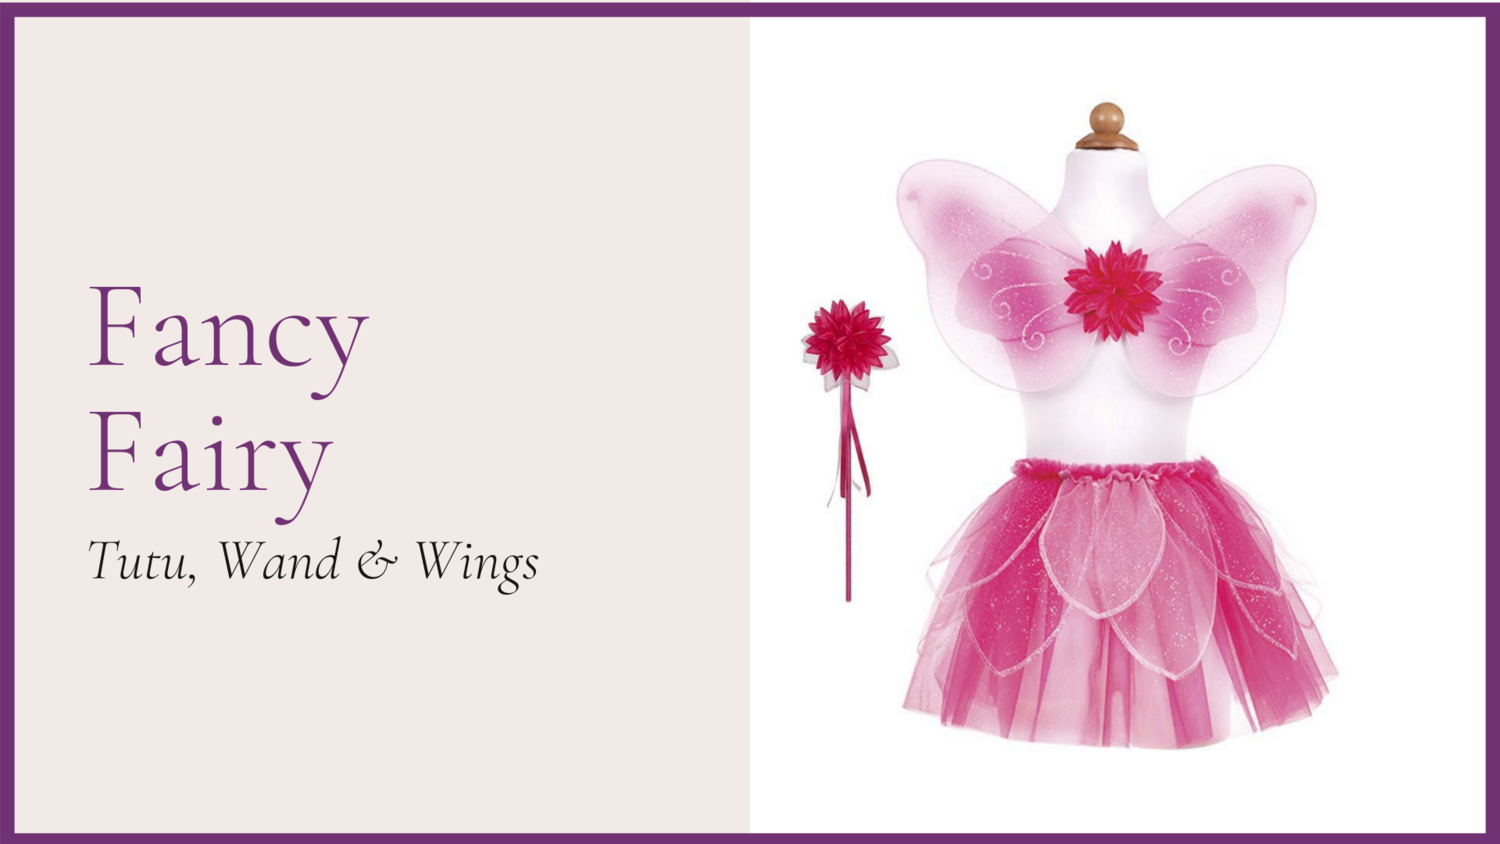 Step #3: Select your skirt and wings